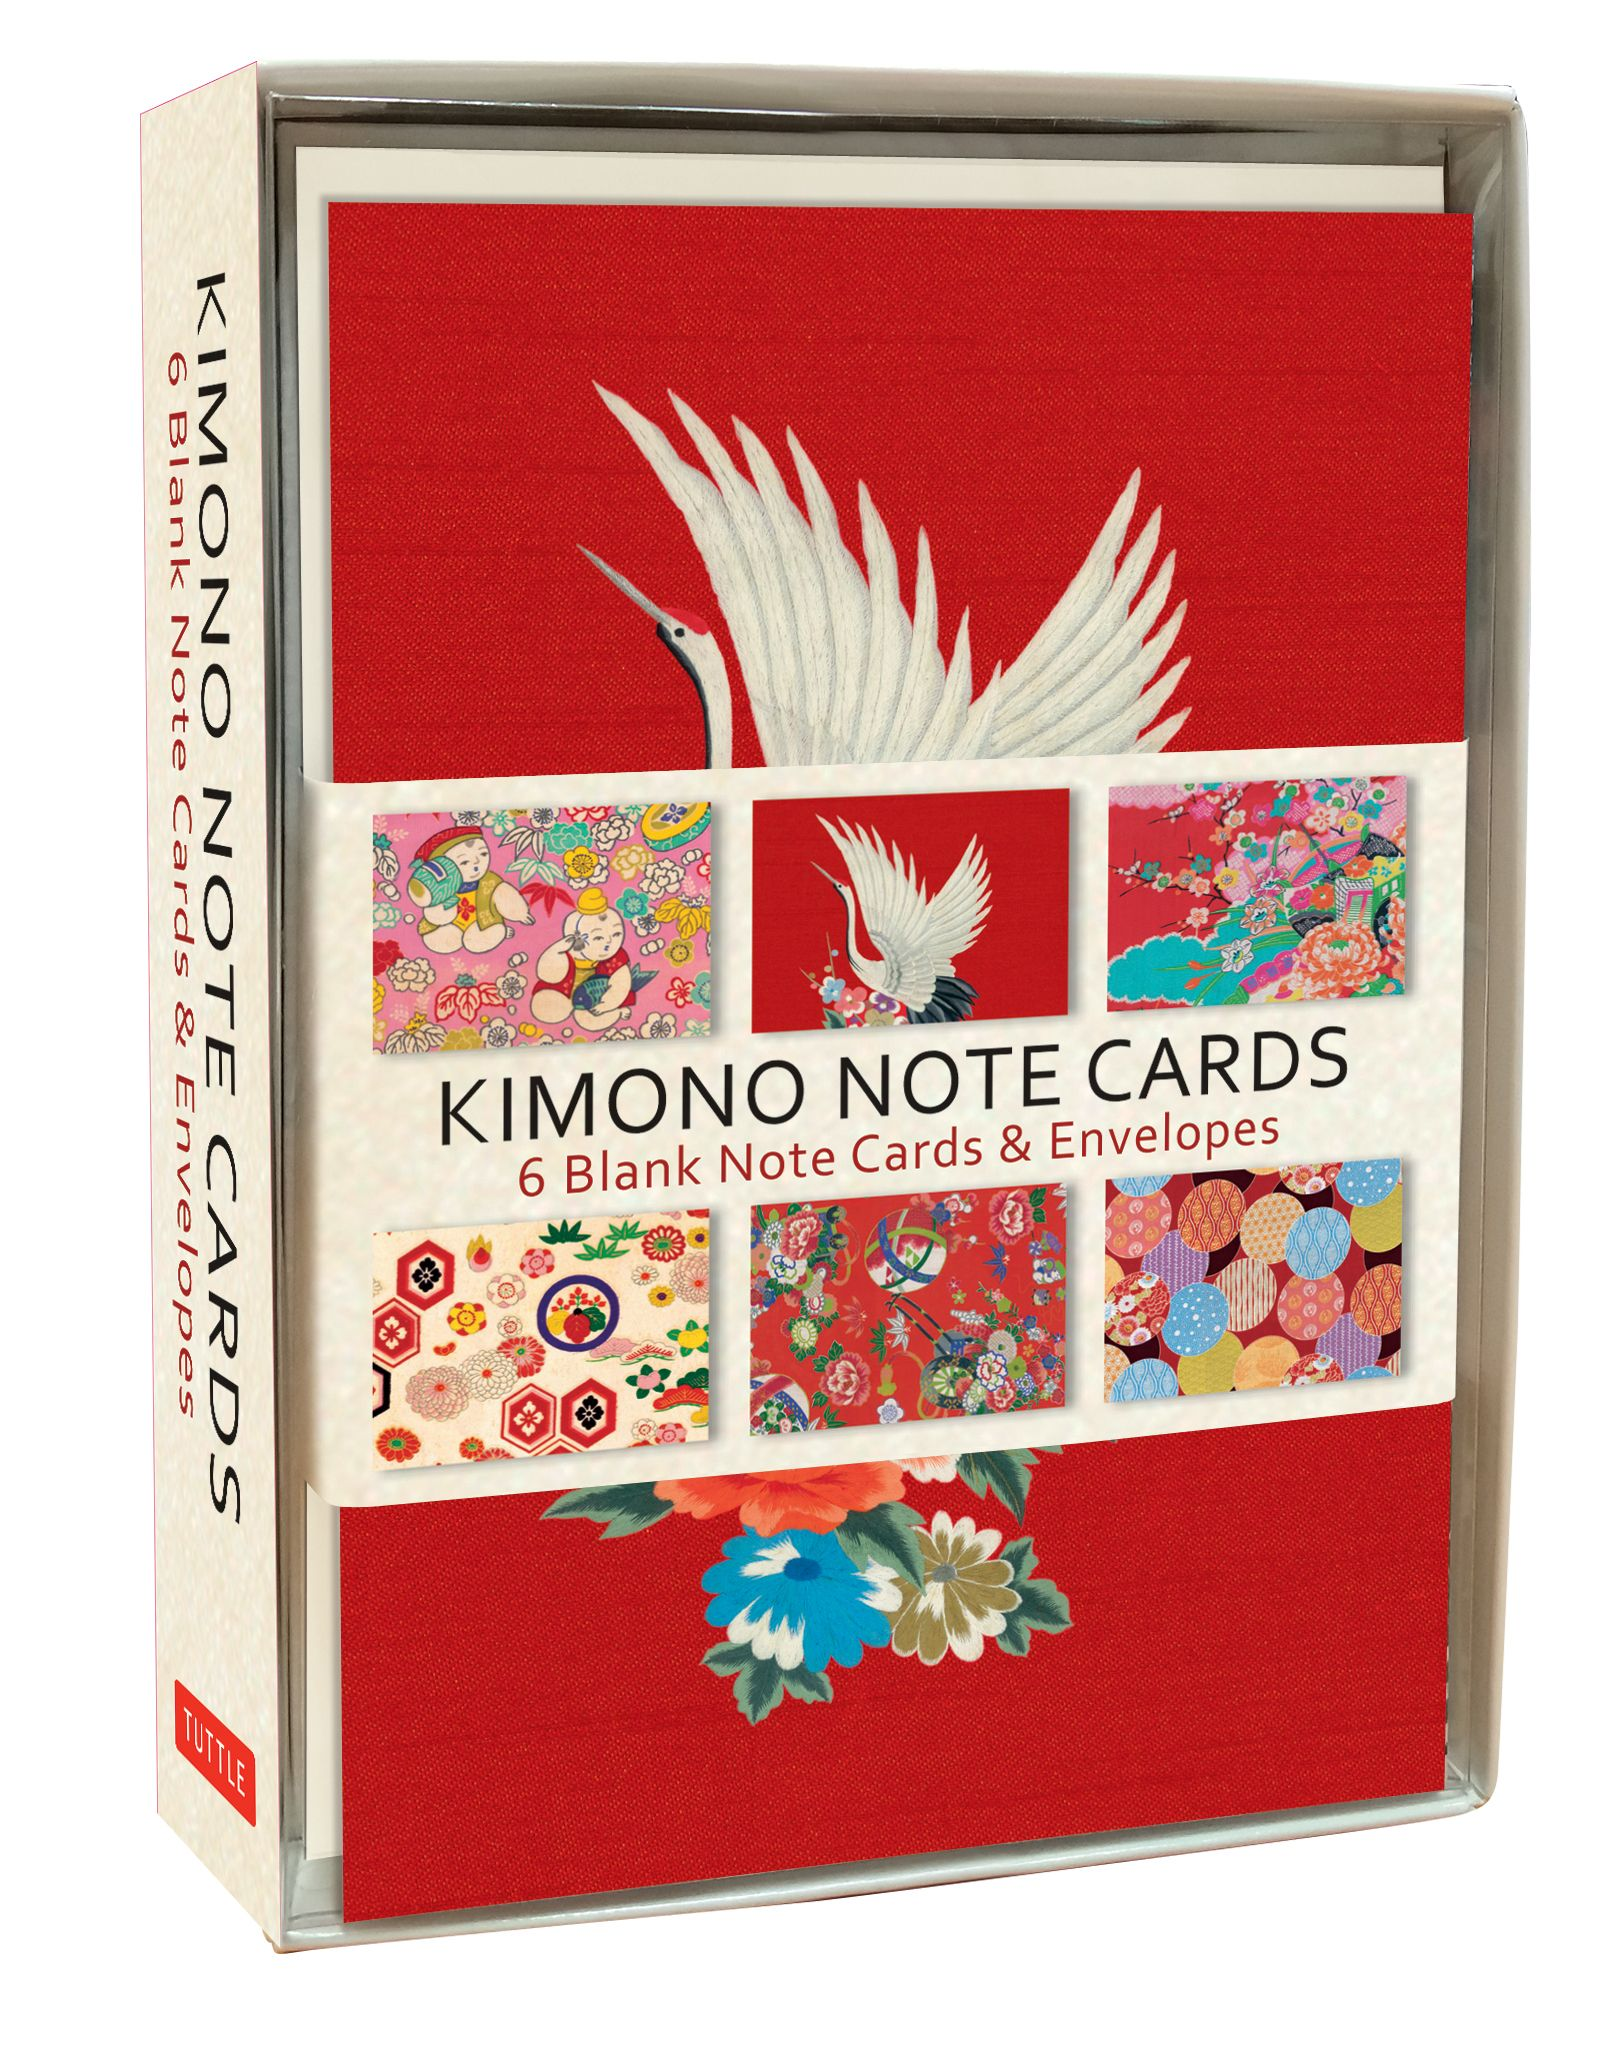 Kimono Note Cards Are Perfect For All Occasions Blank Note Cards Note Cards Boxed Note Cards